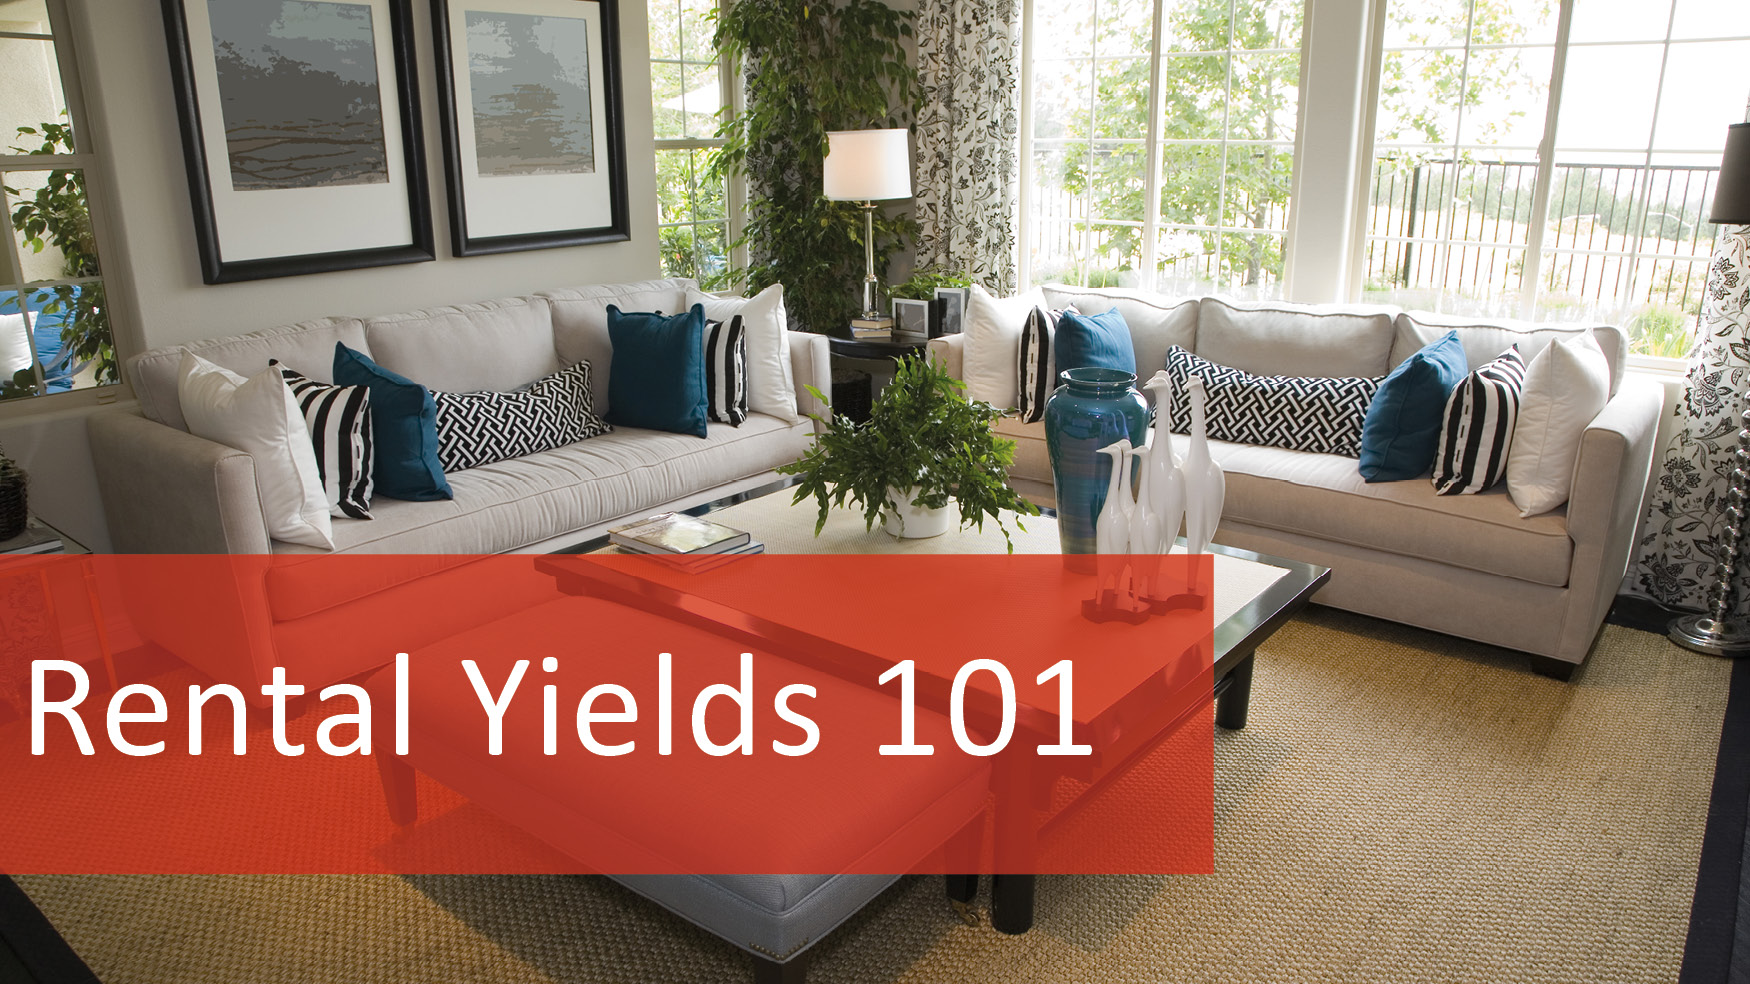 We Love Rentals Rental Yields 101